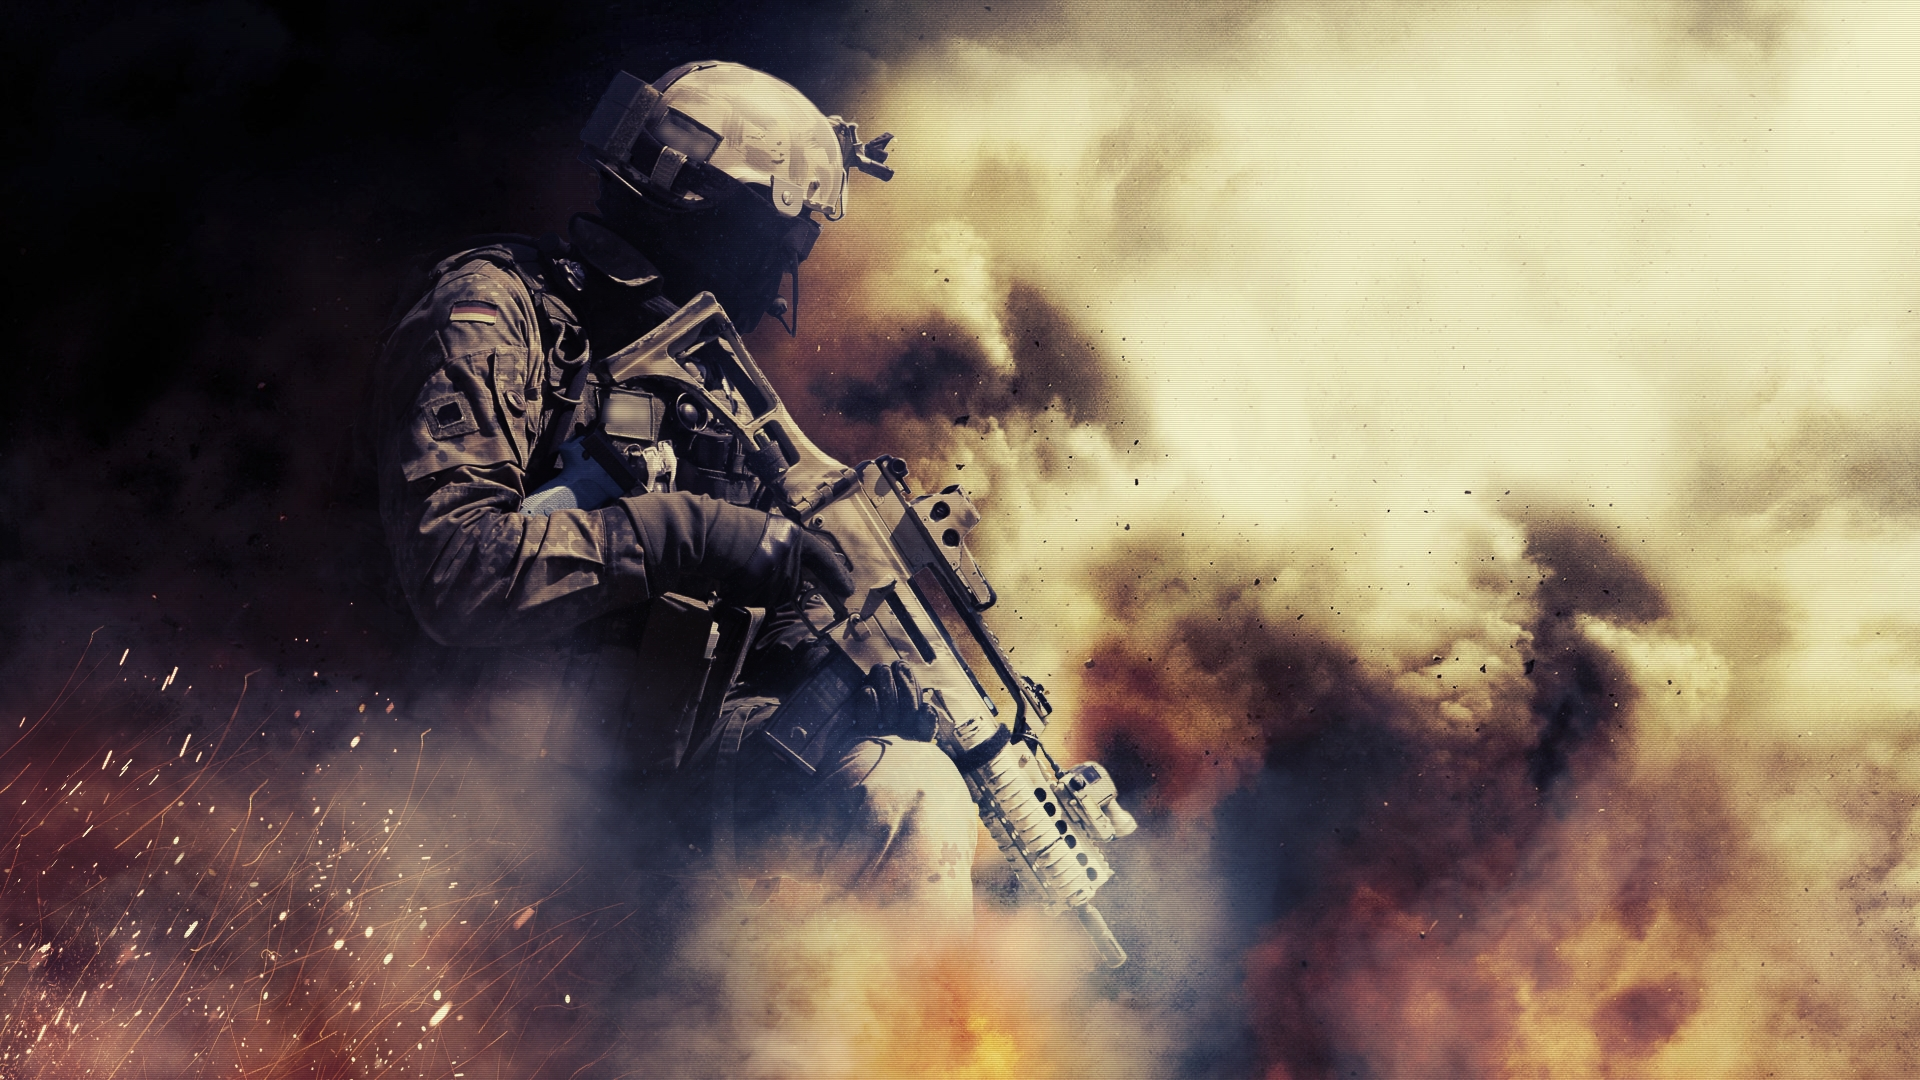 68 medal of honor hd wallpapers | background images - wallpaper abyss